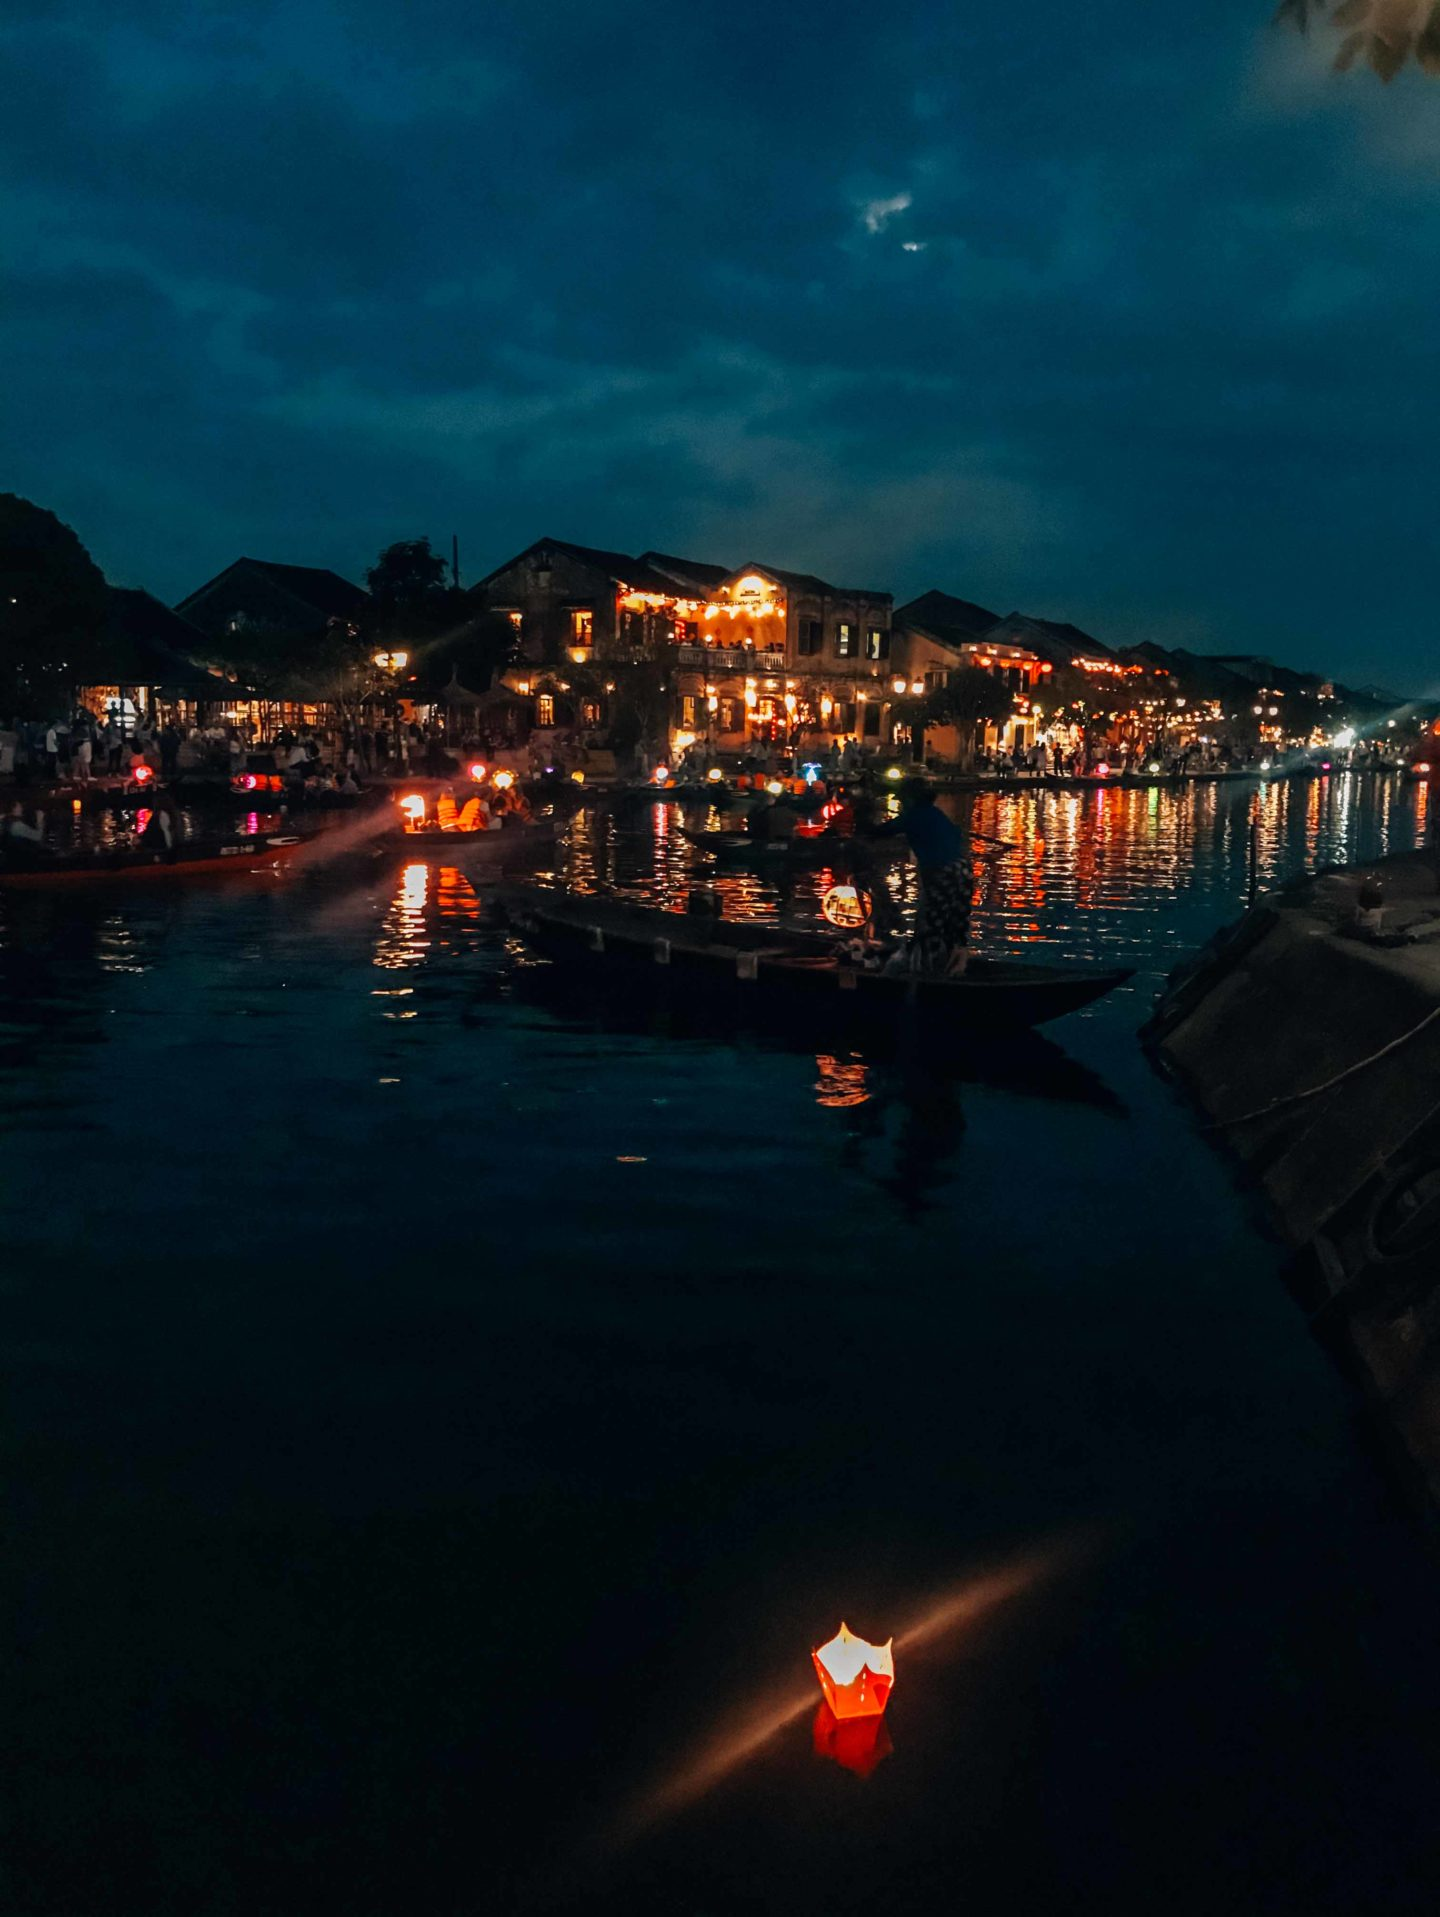 Night Market view in Hoi An, Vietnam